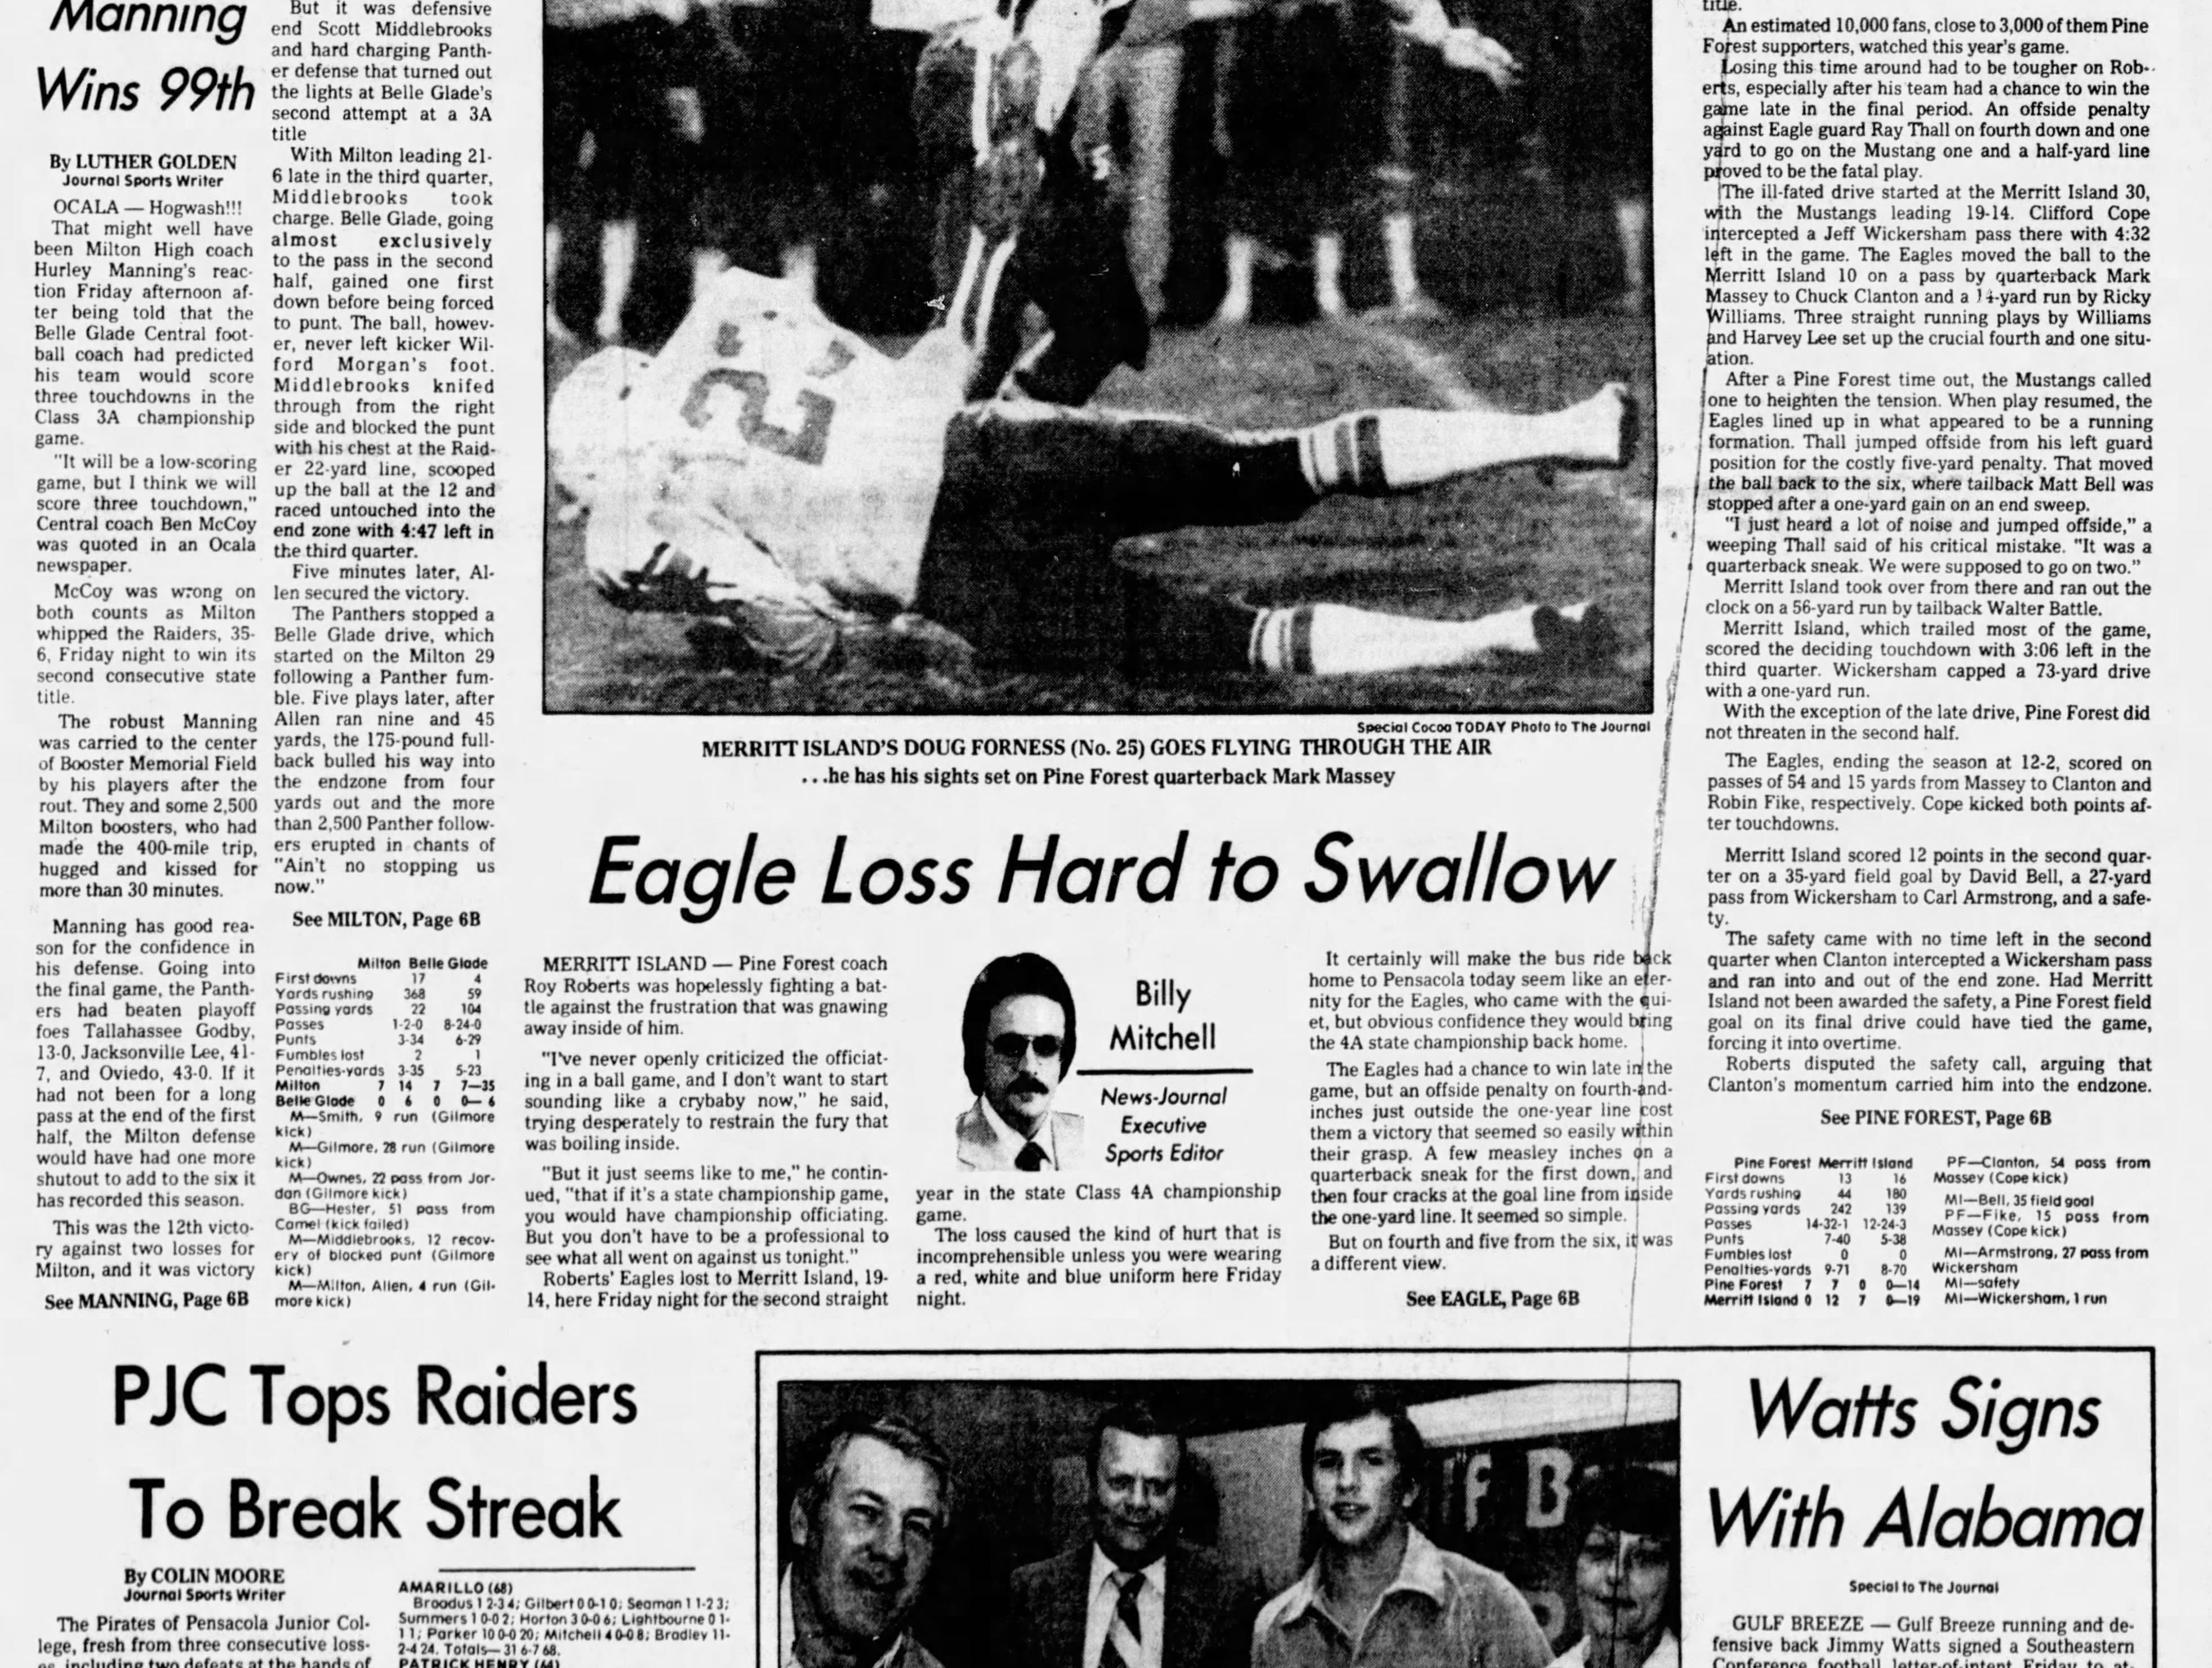 1979: Milton defeats Belle Glades Central 35-6 for the Class 3A title.